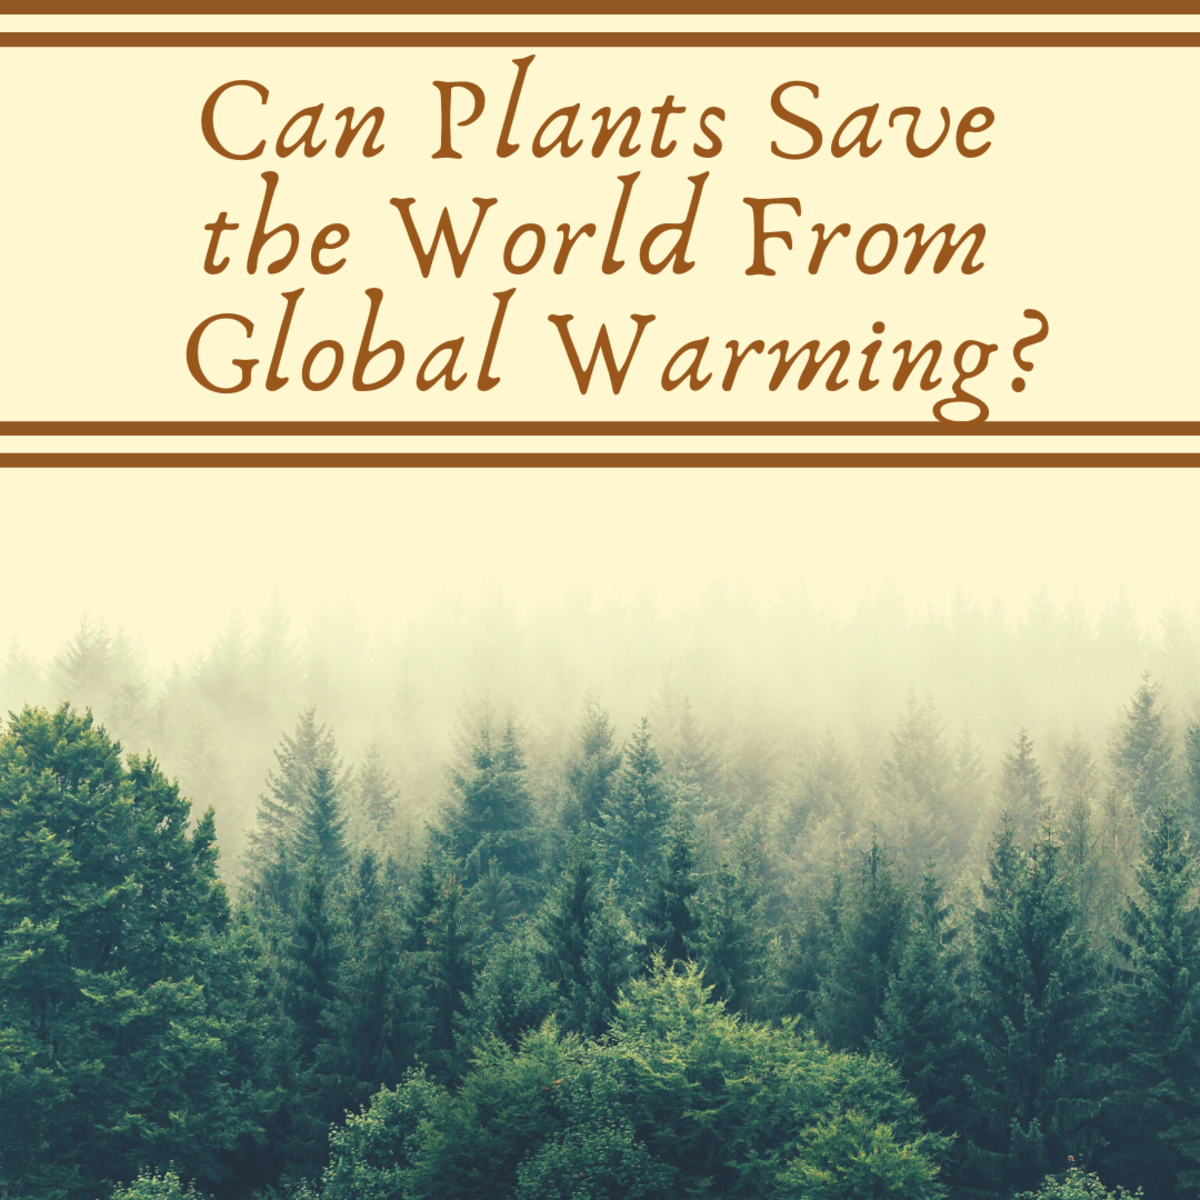 Read on to learn the affect that trees have on global warming.